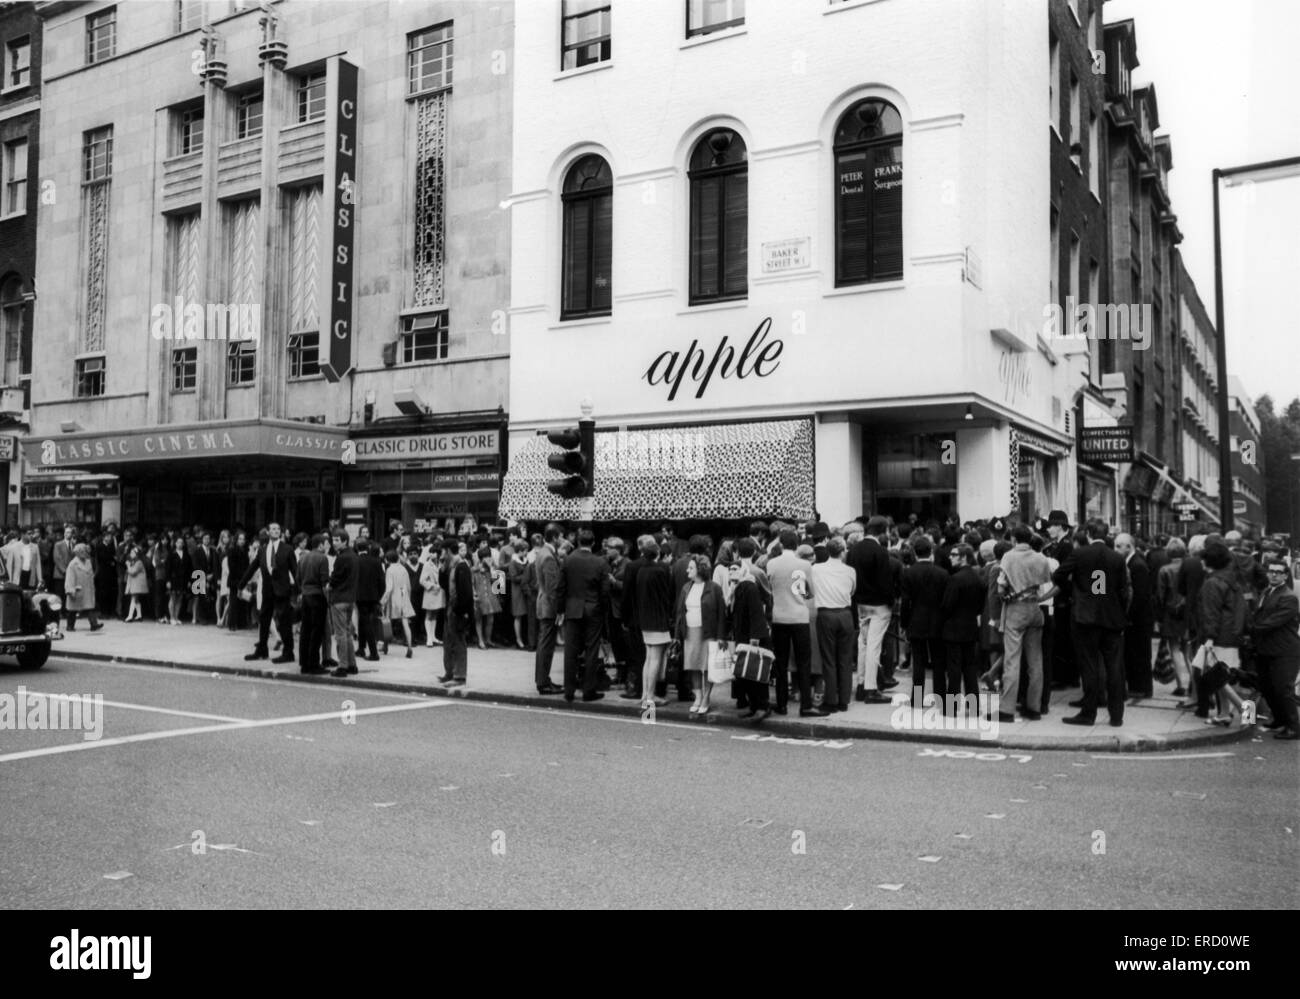 The Beatles, Apple Store, Baker Street, London, W1, 31st July 1968. For the 2nd day running, over £10,000 worth - Stock Image